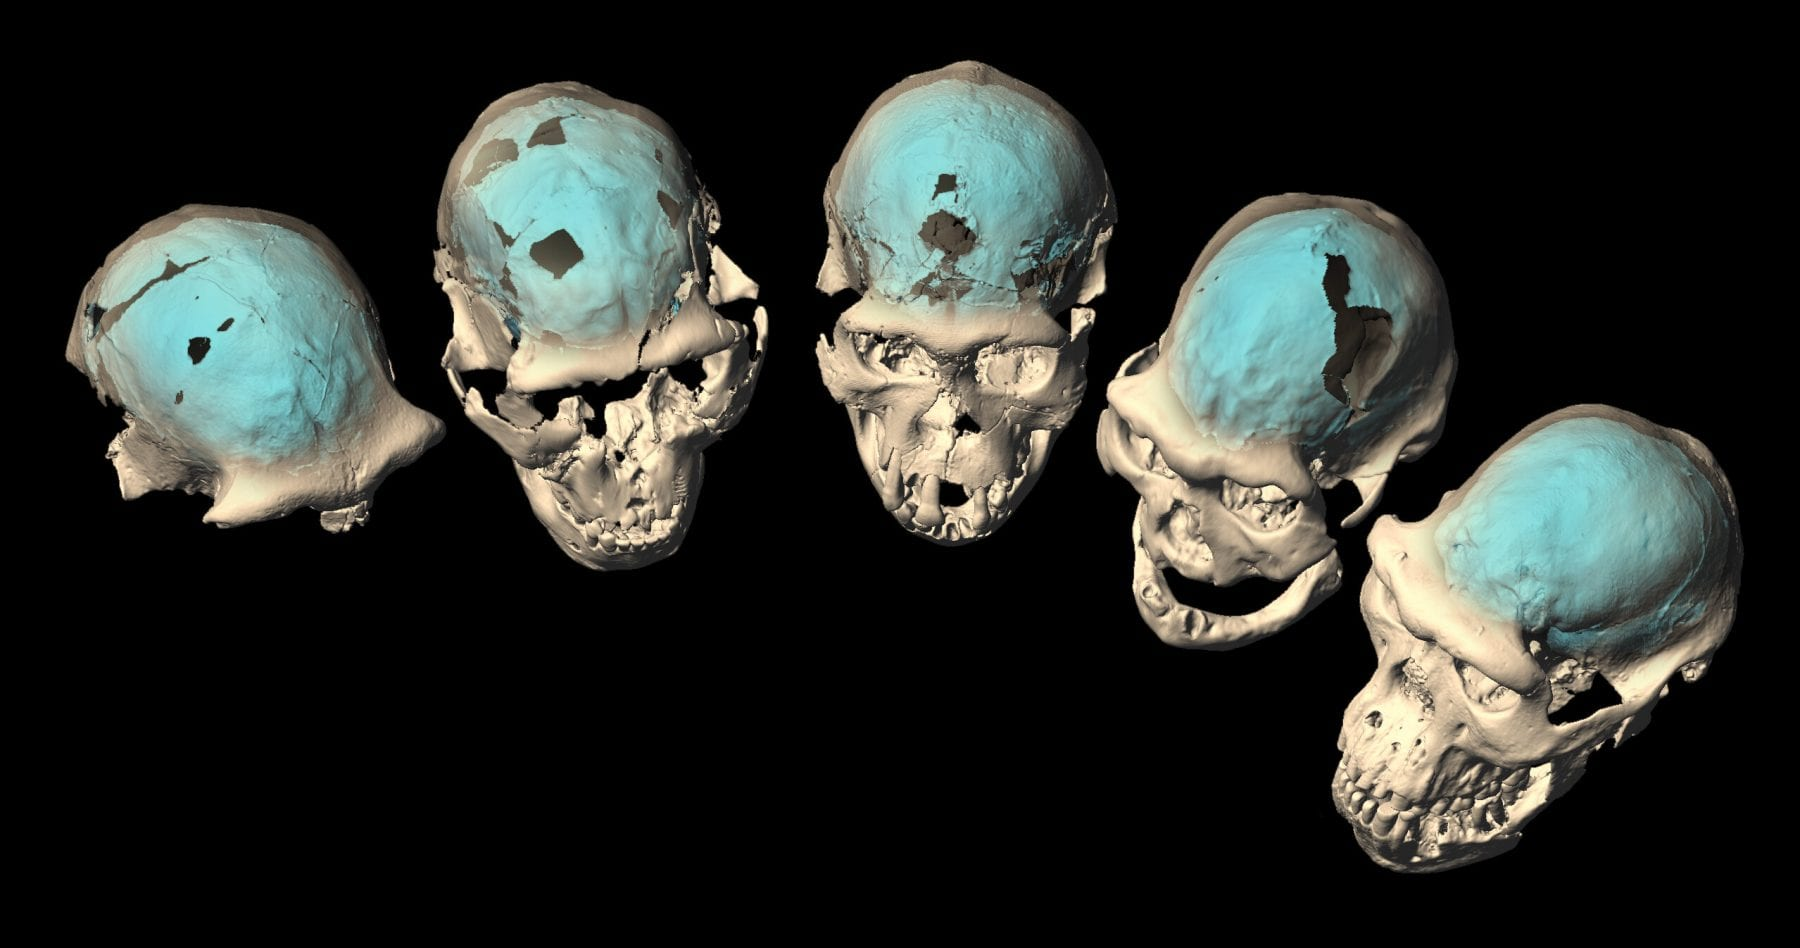 Computer tomography was used to create a virtual reconstruction of the endocasts of early Homo skulls from Dmanisi. Credit: M. Ponce de León and Ch. Zollikofer, University of Zurich